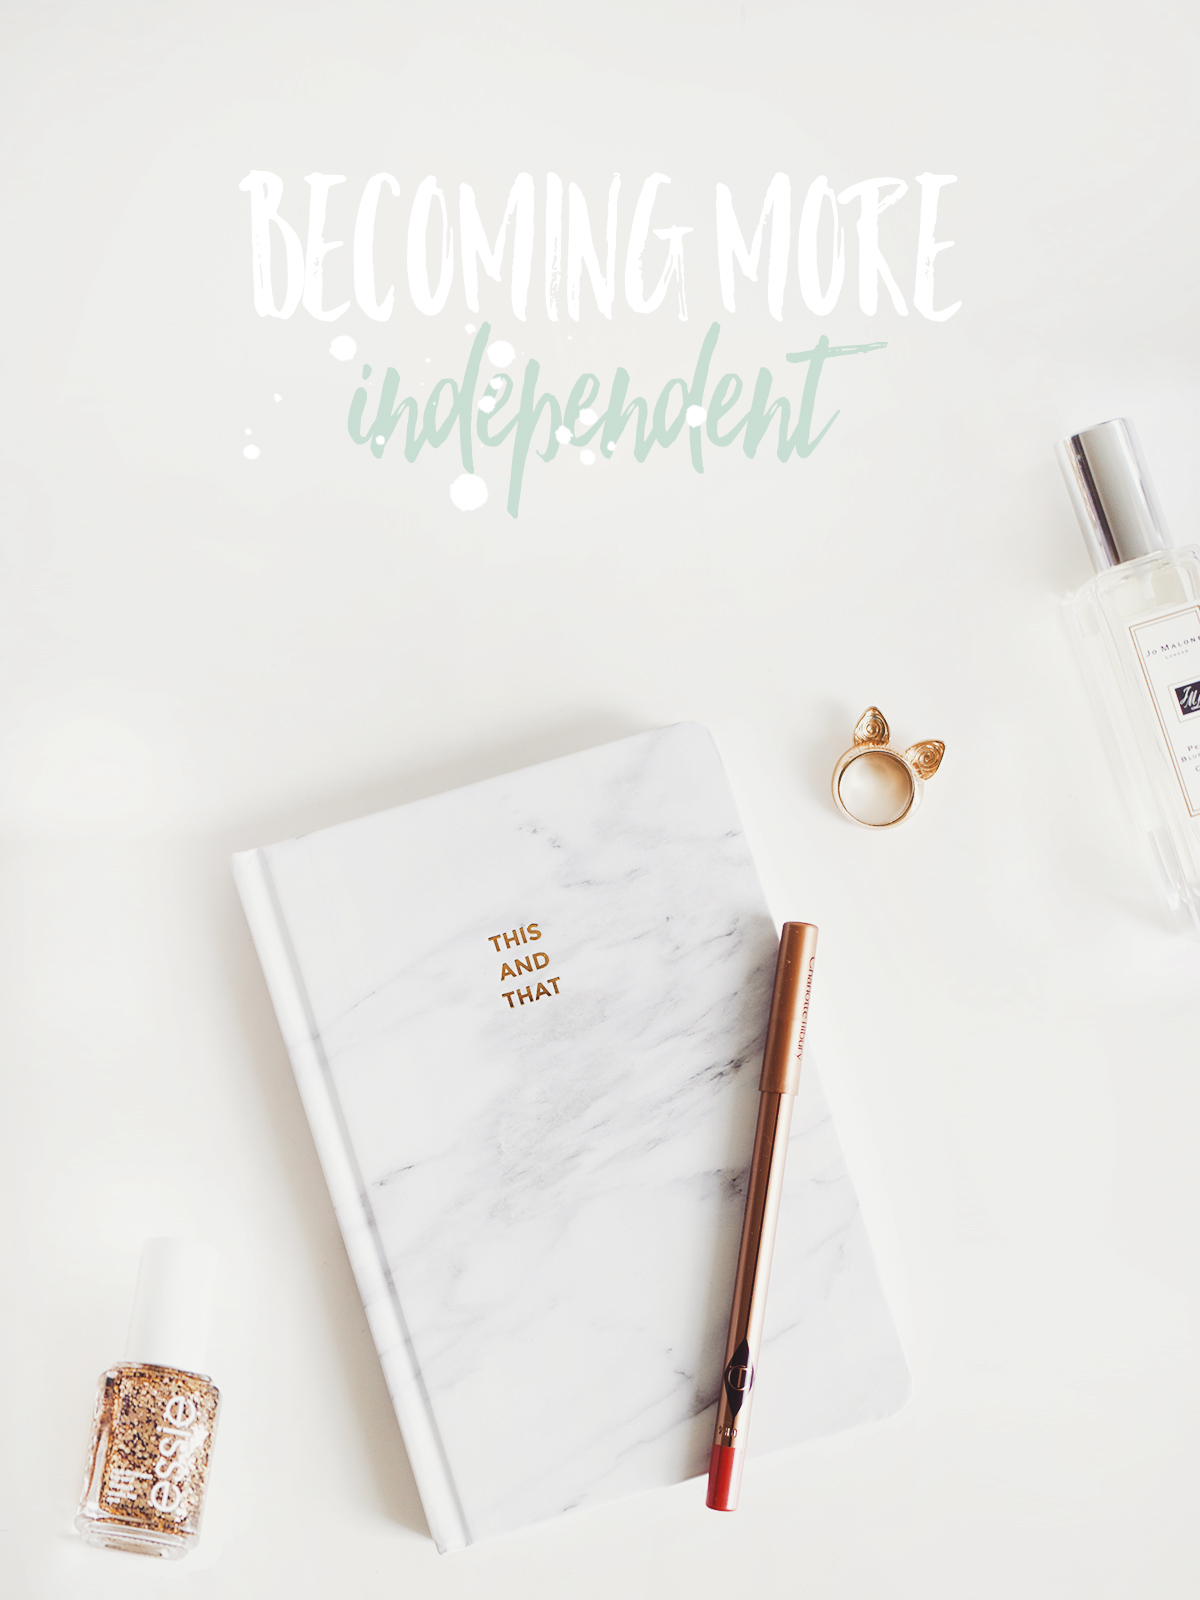 becomingindependent